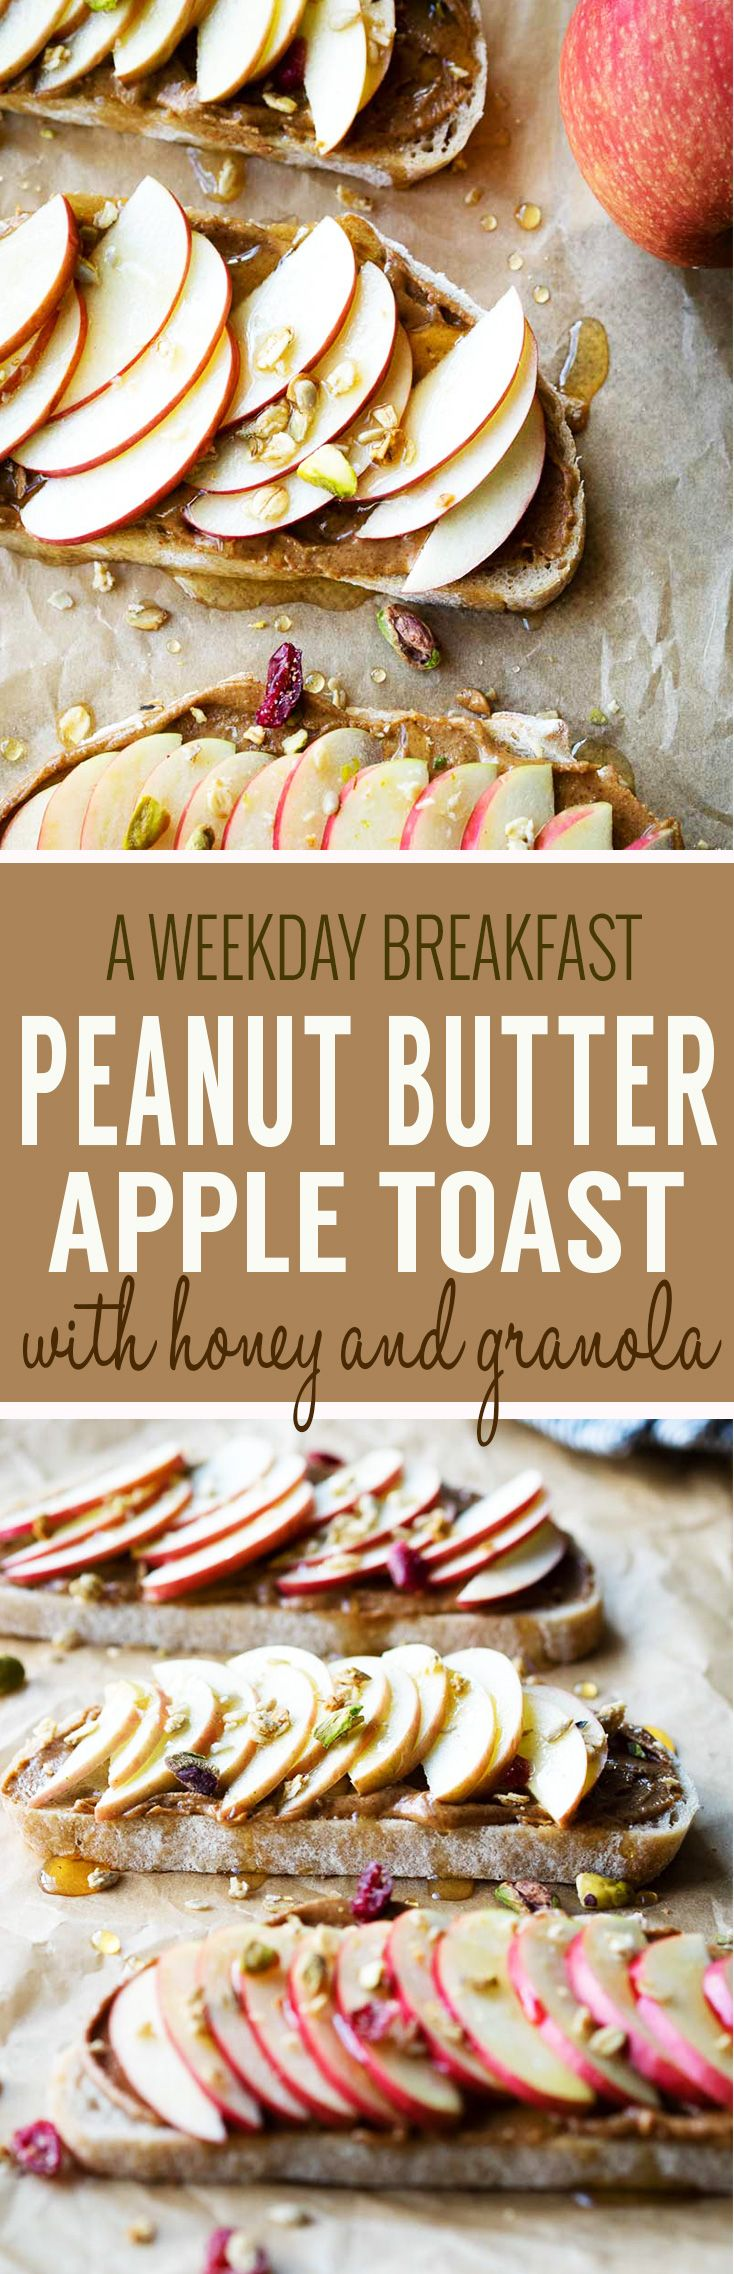 Peanut Butter Apple Toast - a quick weekday breakfast for the entire family. A Healthy, nutritious, and delicious breakfast recipe. #apples #peanutbutter #breakfastrecipe